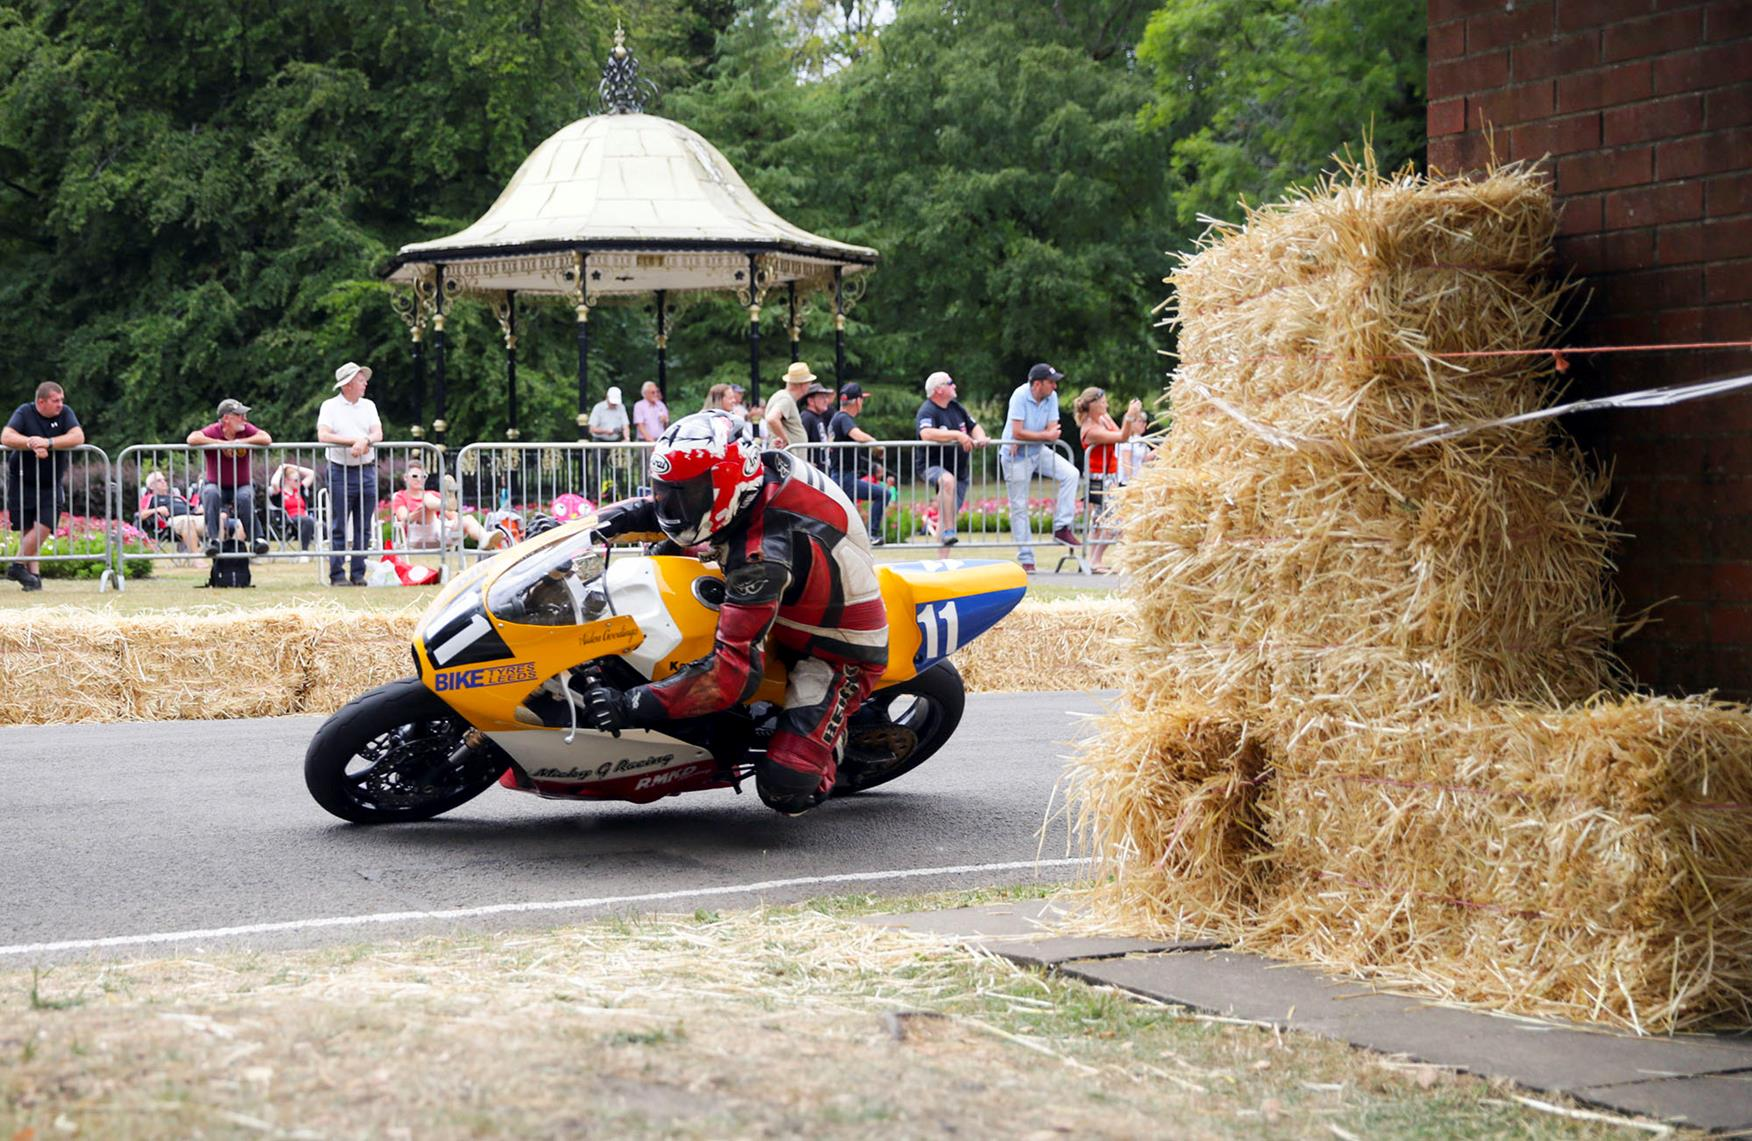 Bales of hay are still a common safety feature at road races